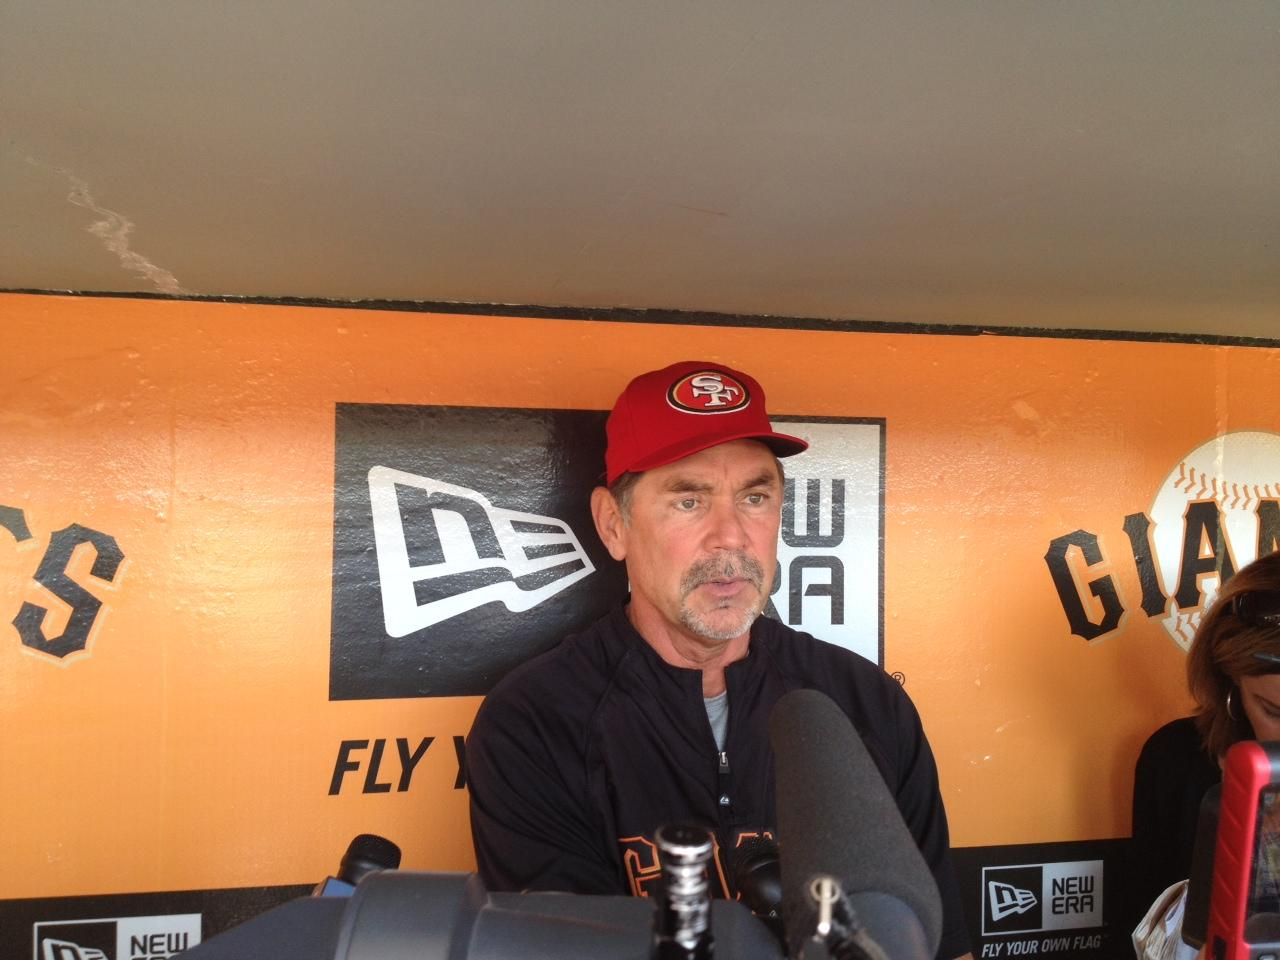 The NFL will probably try to fine Bochy. RT @SFGiants: Bruce Bochy has Alex Smith's back http://t.co/Vyxc7QeT